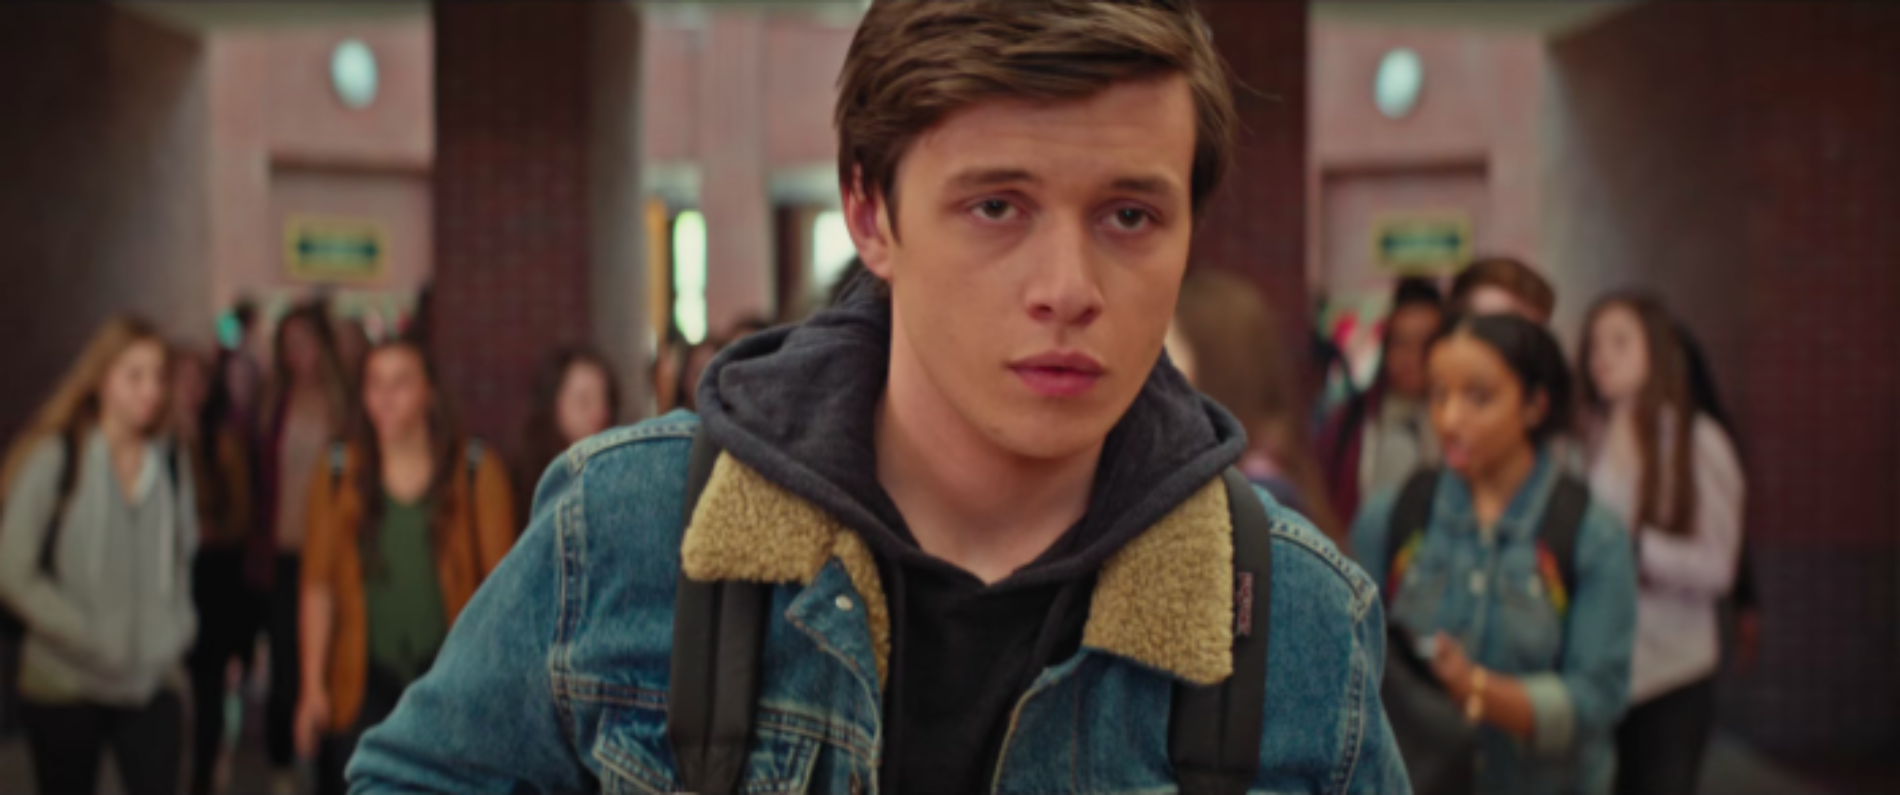 Twitter User schools detractors of 'Love, Simon' on the relevance of the film